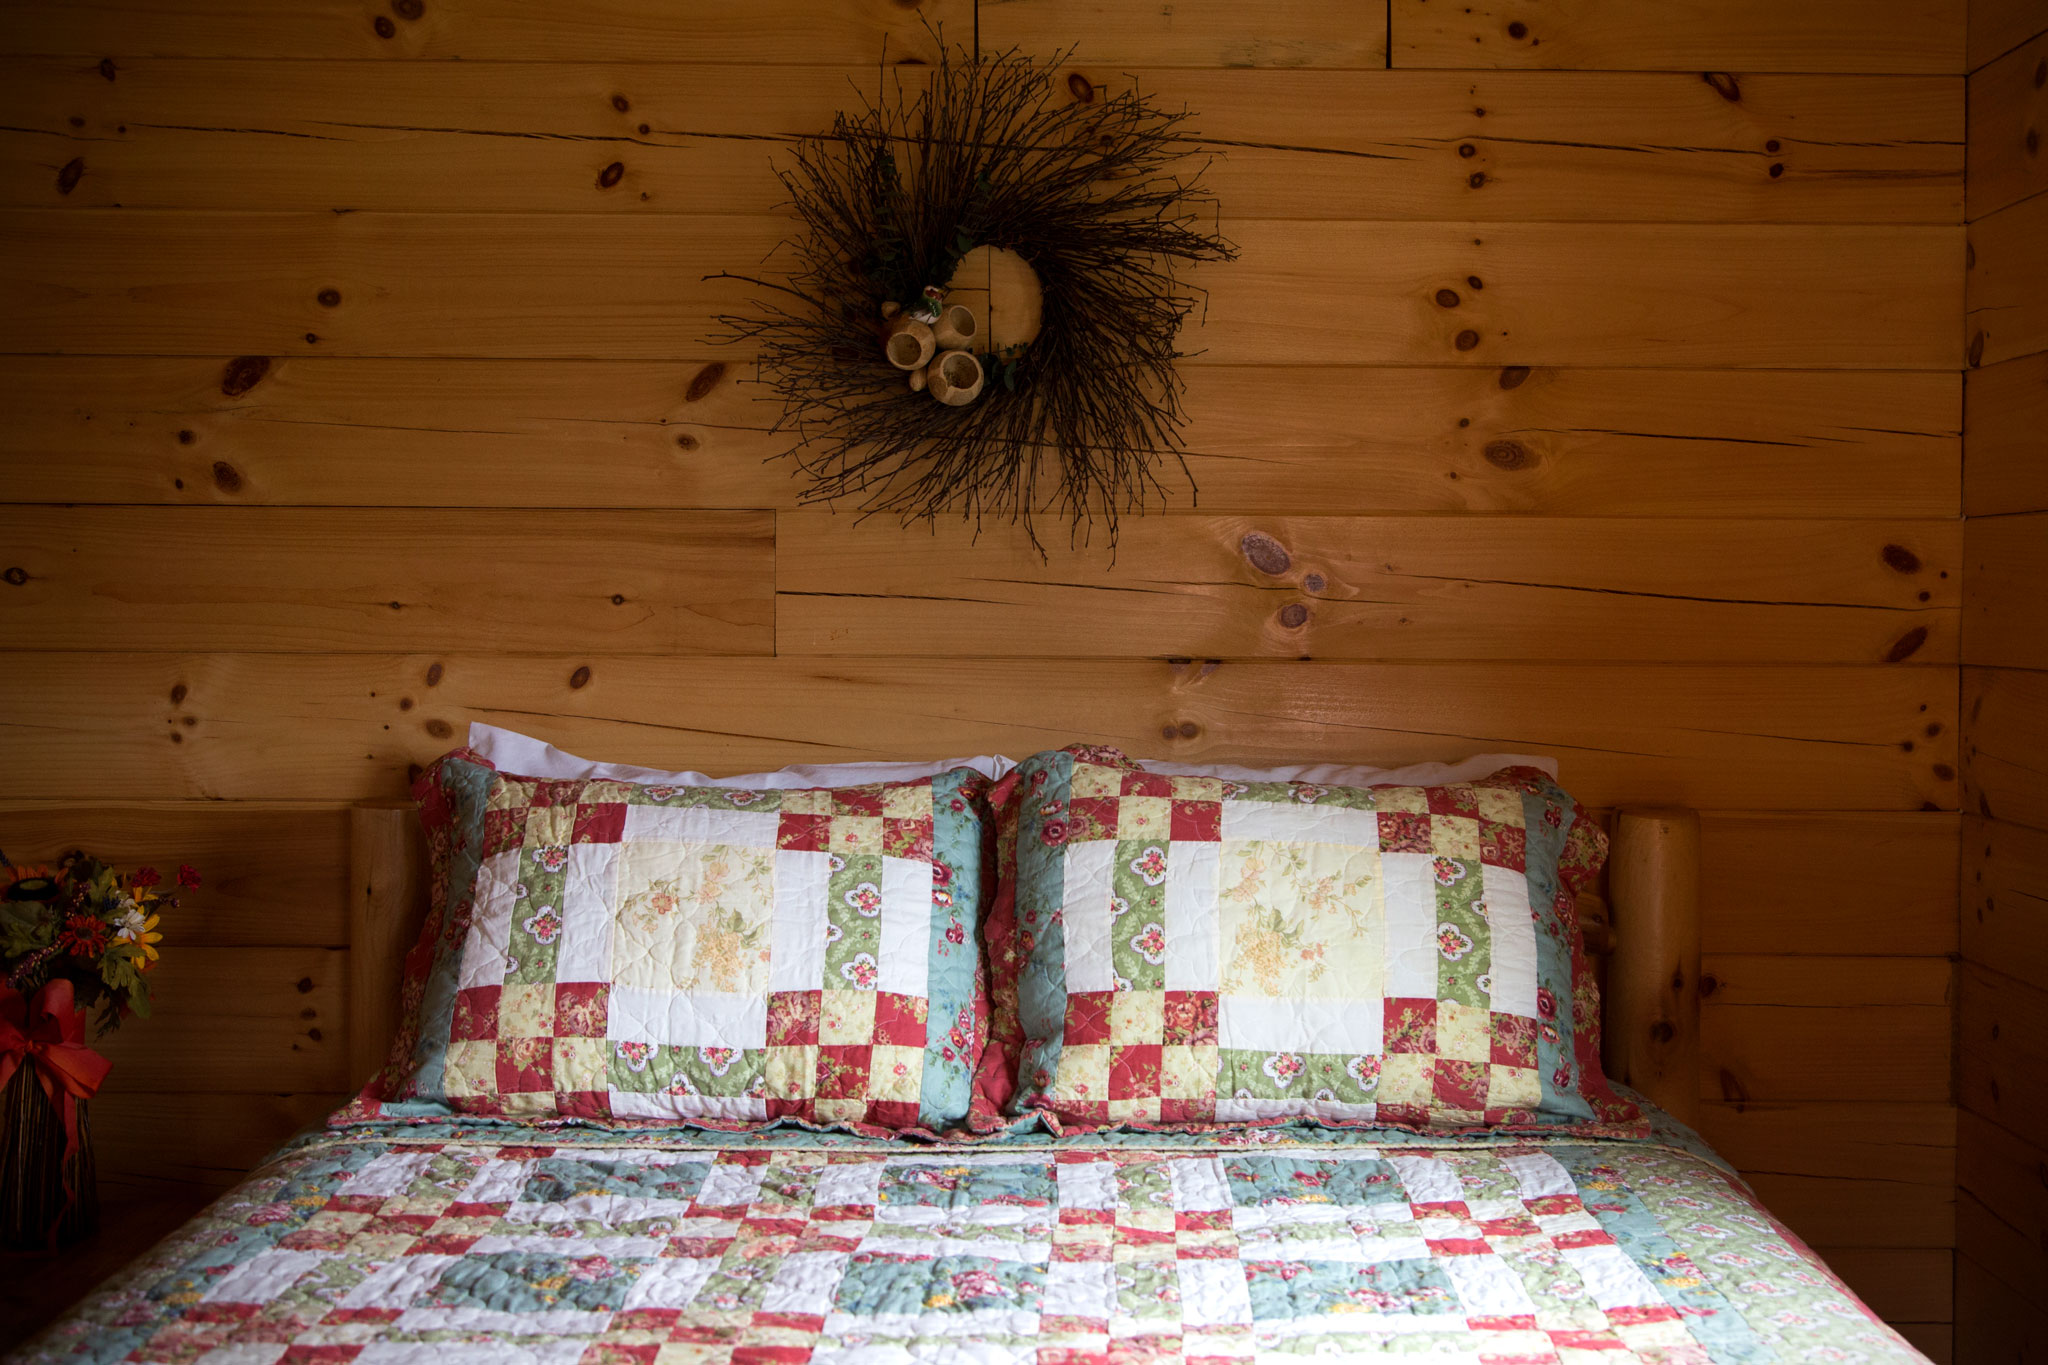 Bed with two pillows covered with quilted blanket. Wooden wall with ornament in background.